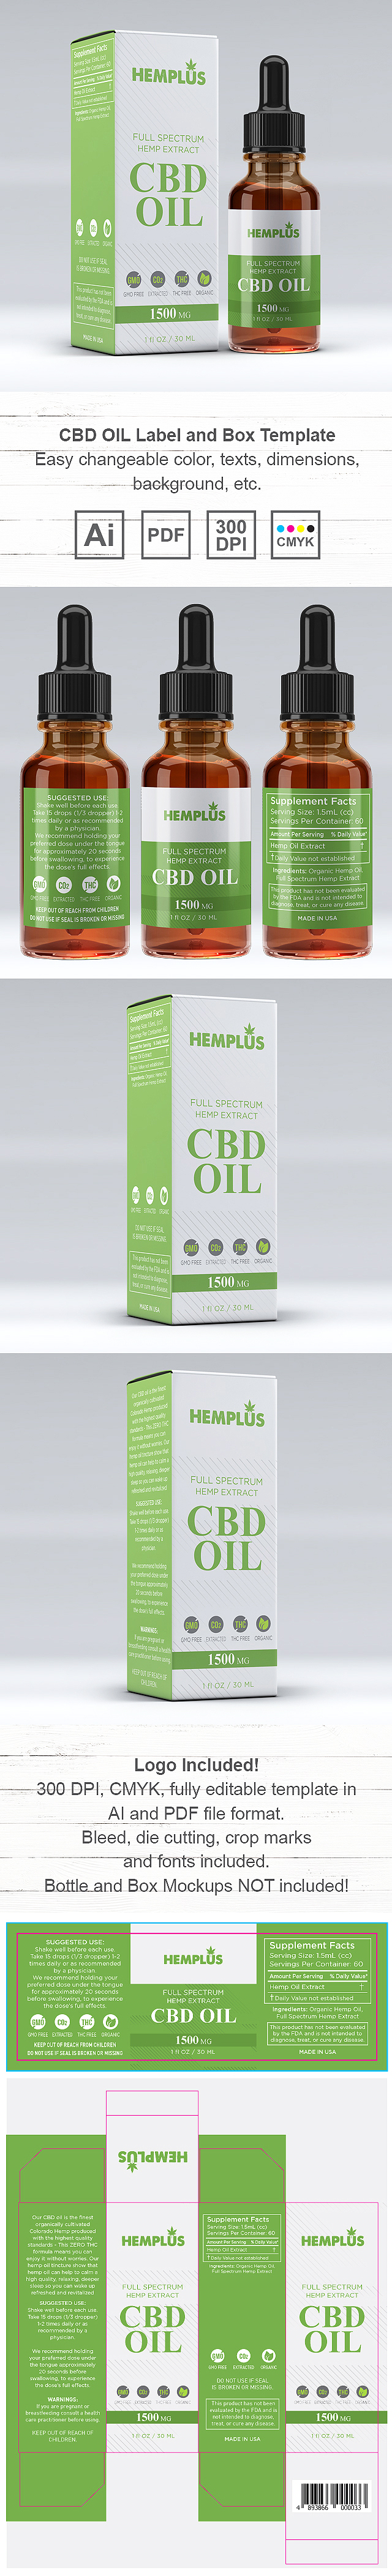 CBD OIL Supplement Label and Box Template